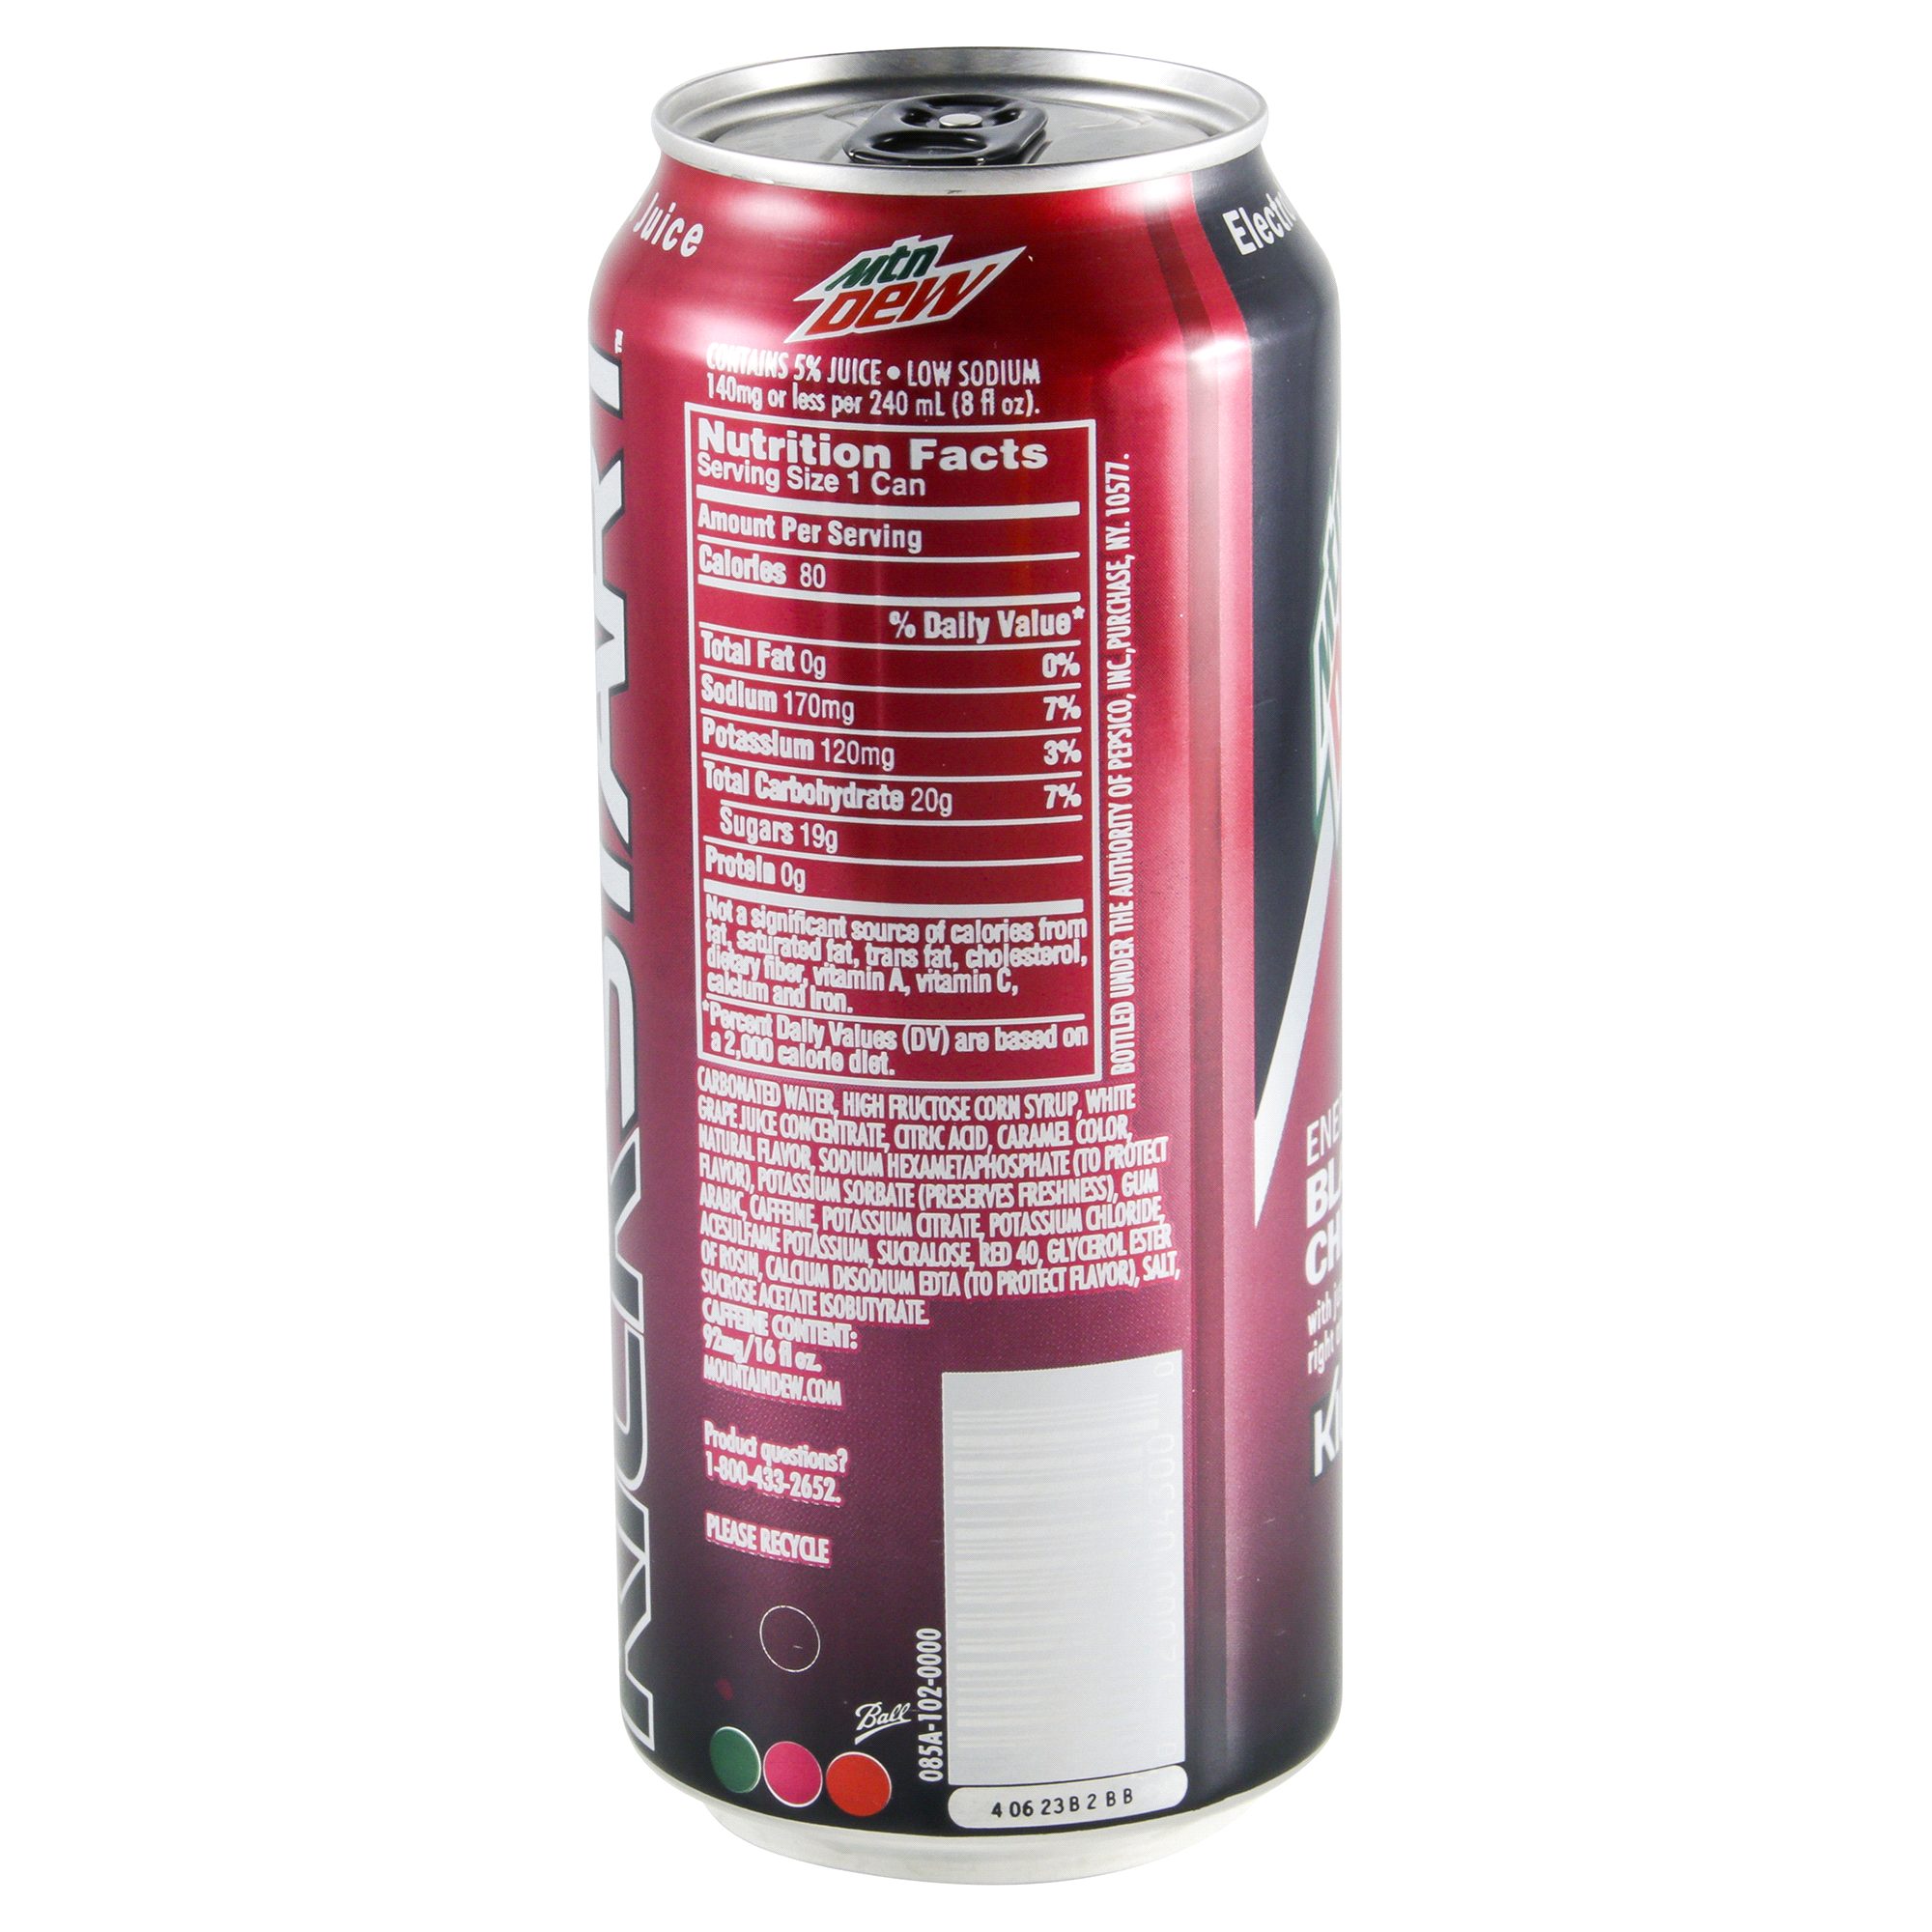 Dew. Juice. Caffeine. Mtn Dew Kickstart is three awesome things combined - just like Puppymonkeybaby Mtn Dew Kickstart Recharge Blood Orange and Blueberry Pomegranate combine the great taste of DEW with real fruit juice and antioxidants vitamins C and E to get you charged for your next big moment.